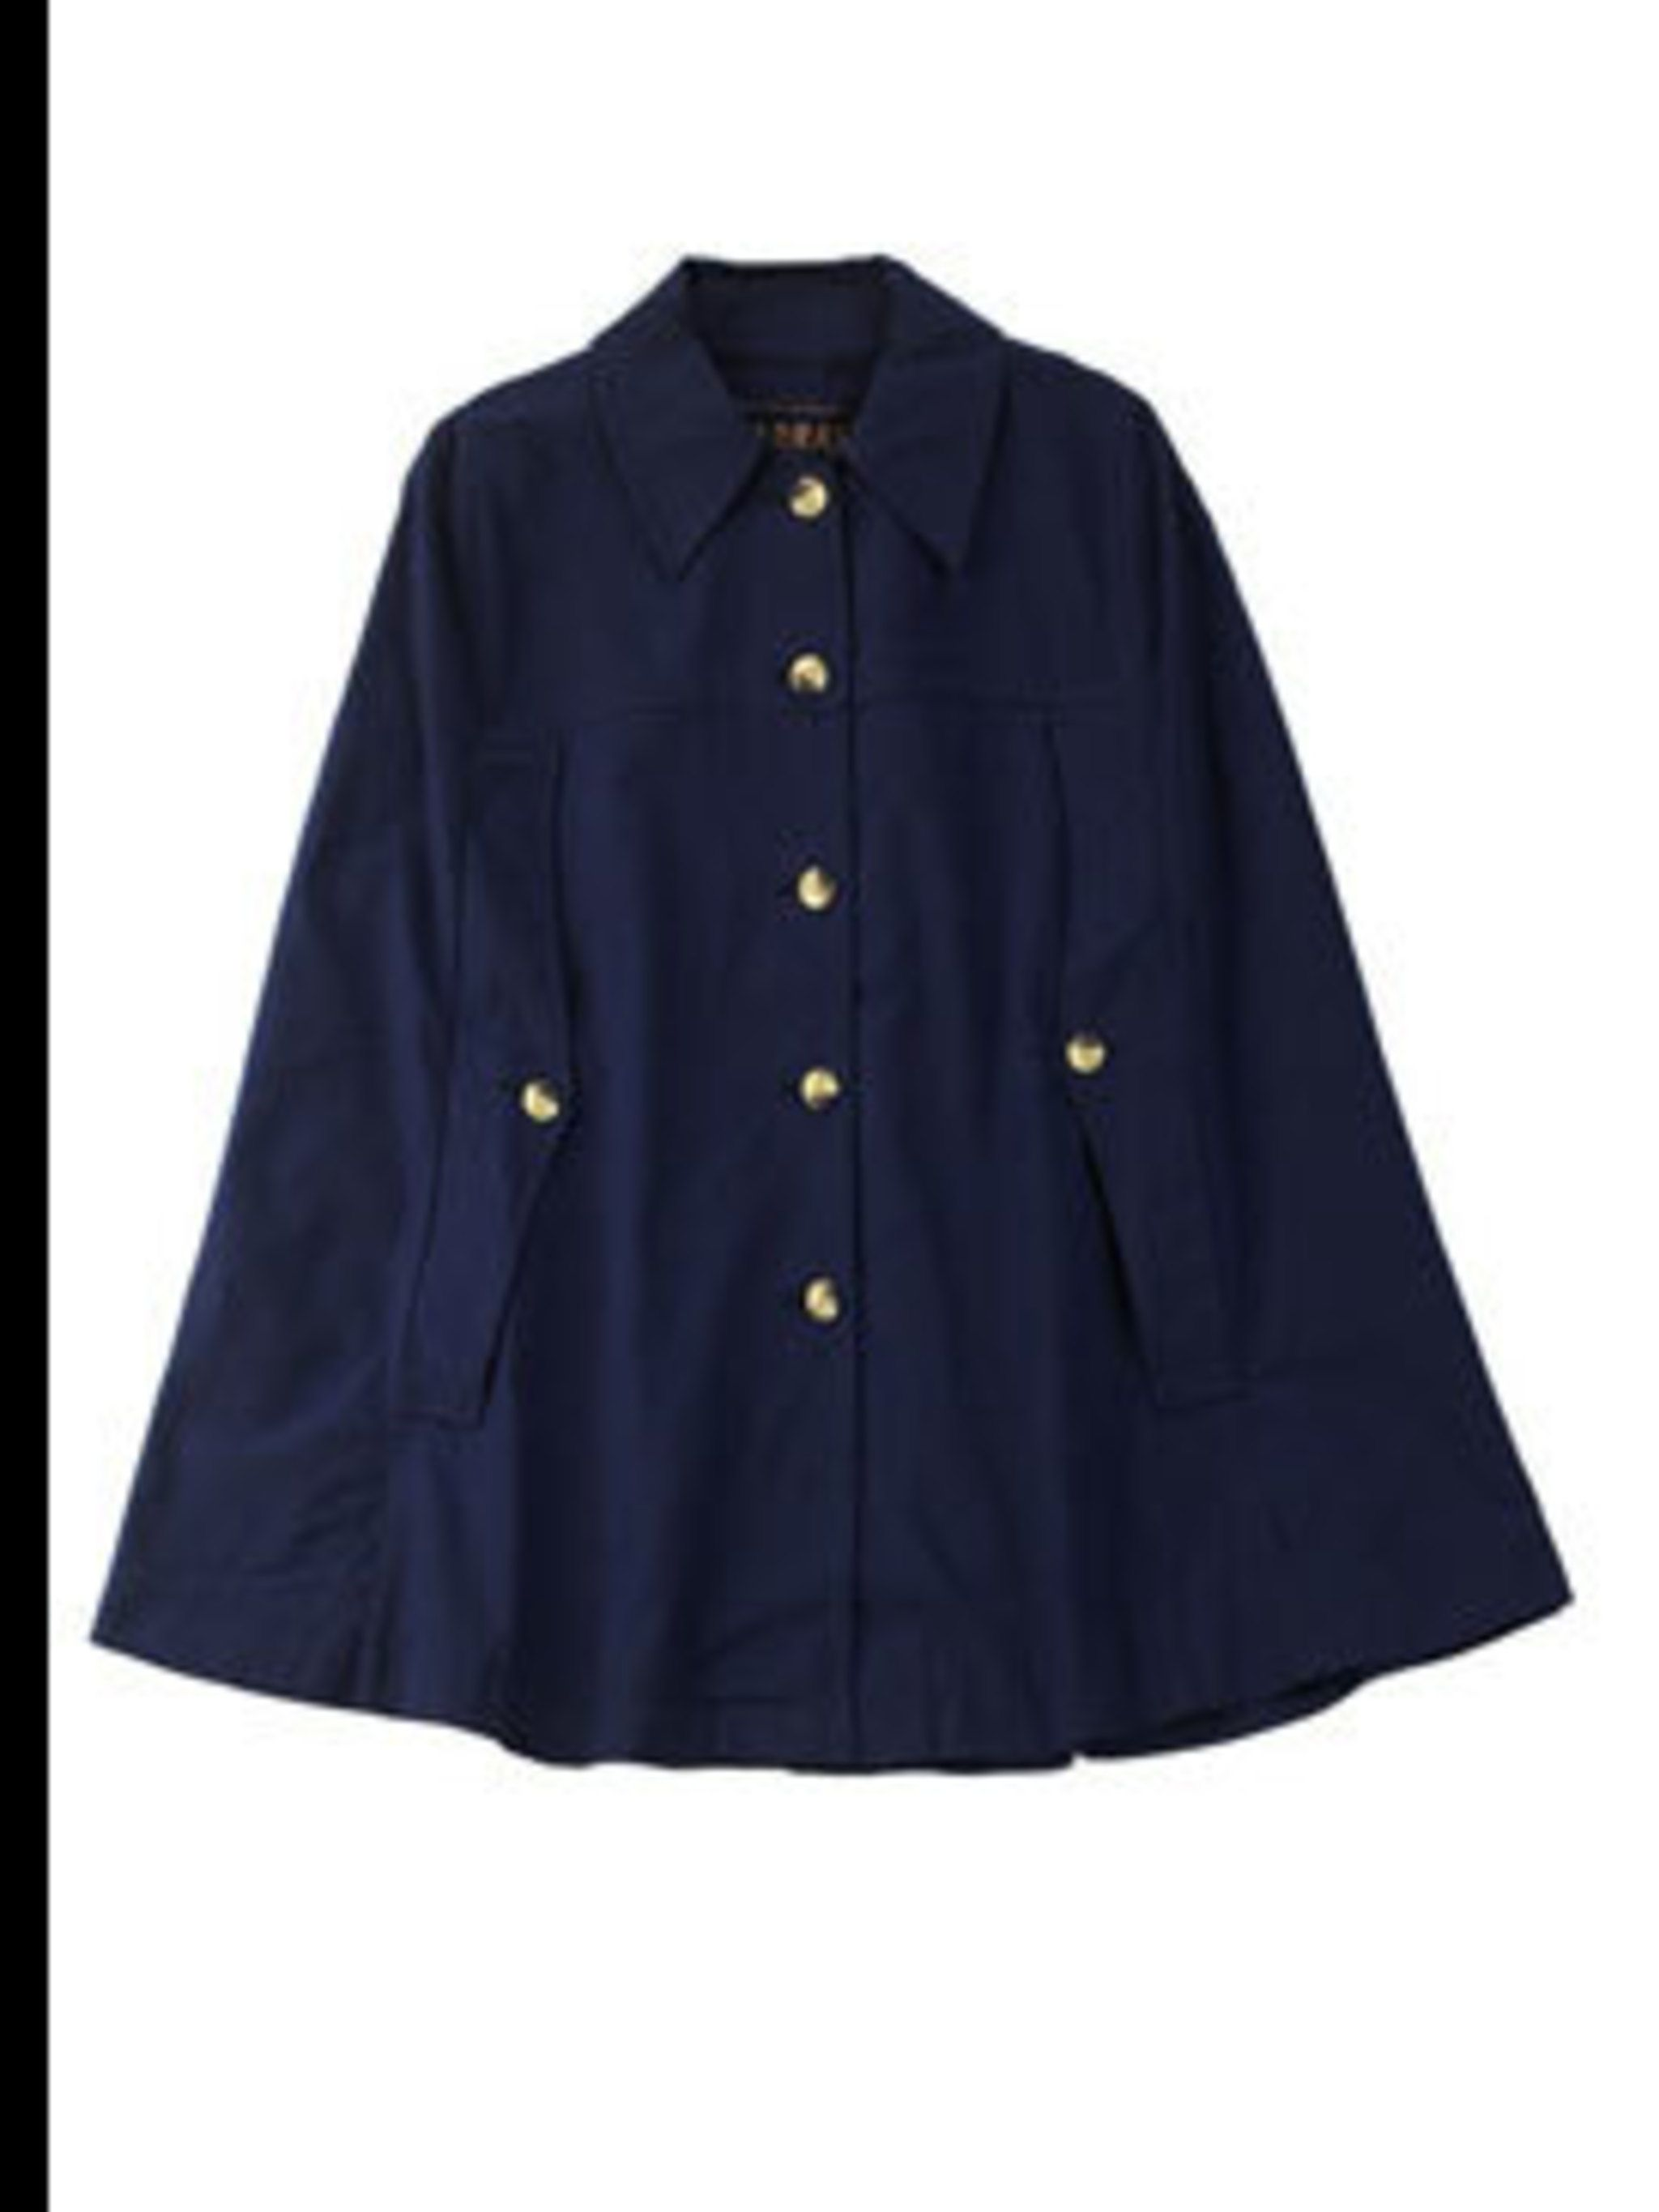 "<p>Blue cape, £125, by APC Madras at <a href=""http://www.lagarconne.com/store/item.htm?itemid=4659&sid=626&pid=625"">La Garconne</a></p>"